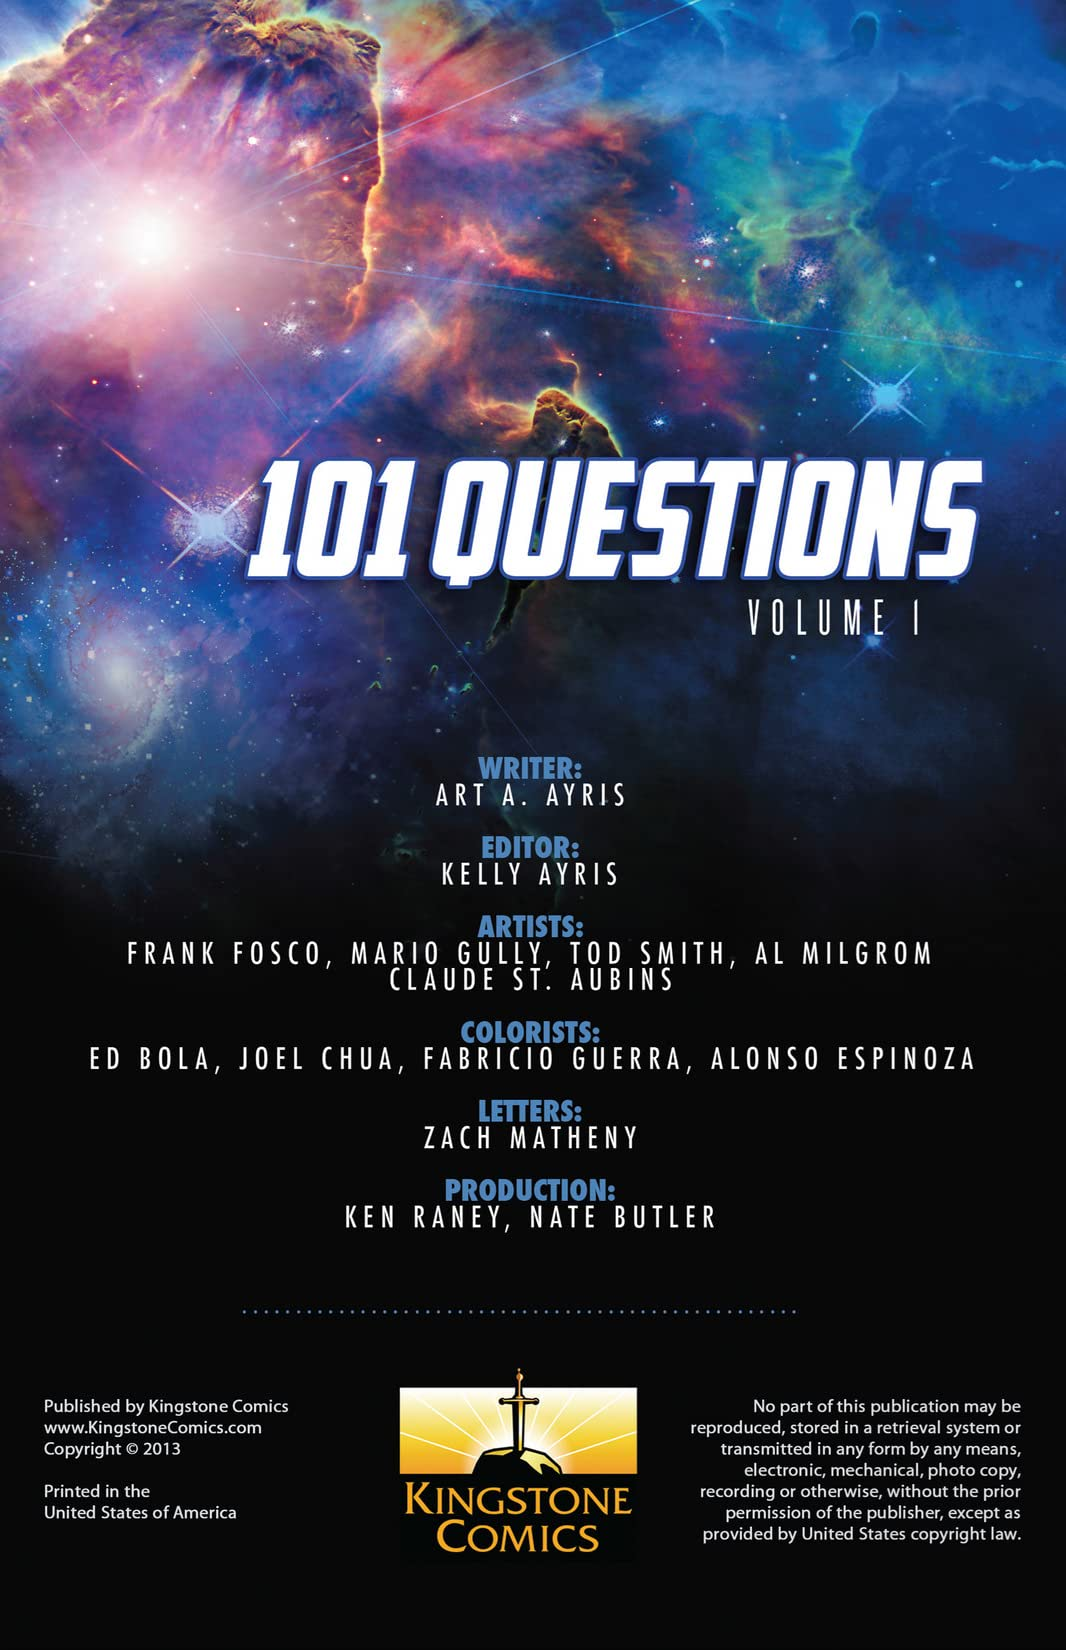 101 Questions About The Bible & Christianity